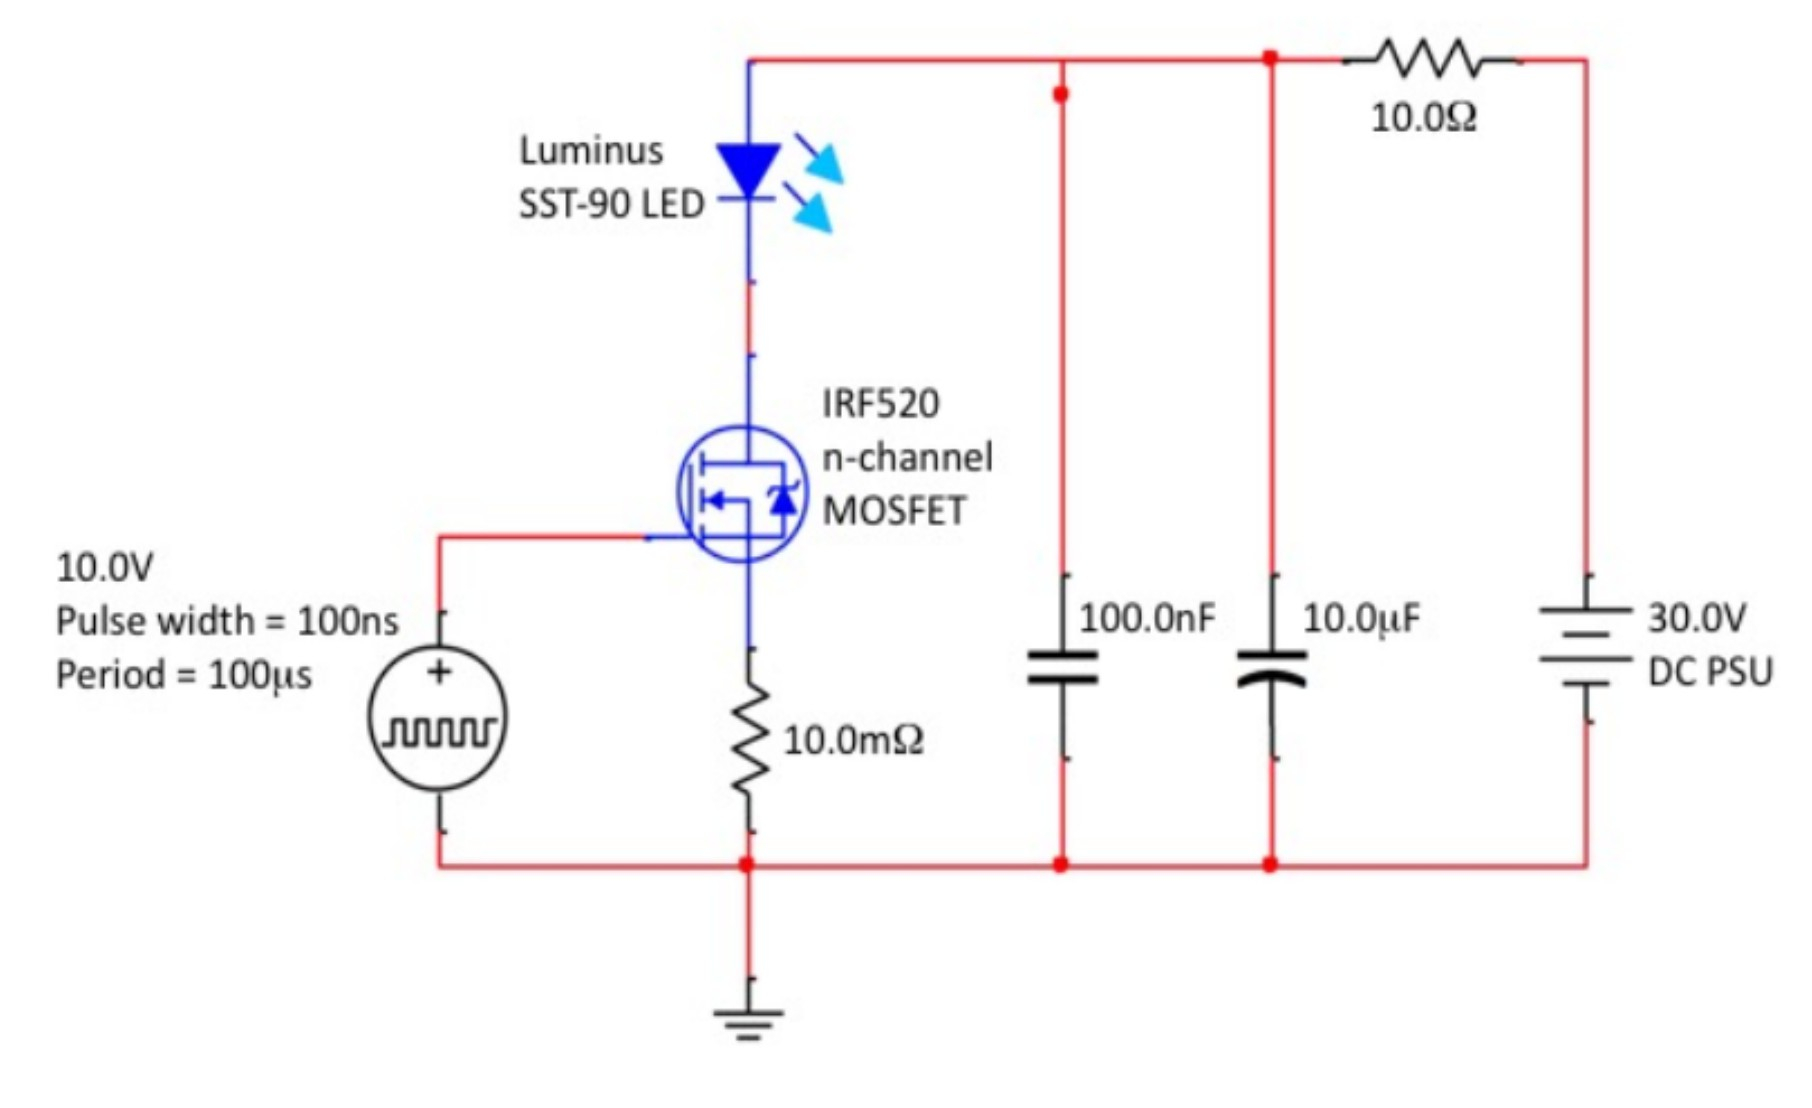 led driver wiring diagram Download-Led Driver Circuit Diagram Inspirational Led Lamp with Sleep Timer Make Wiring Diagram Ponents 15-p